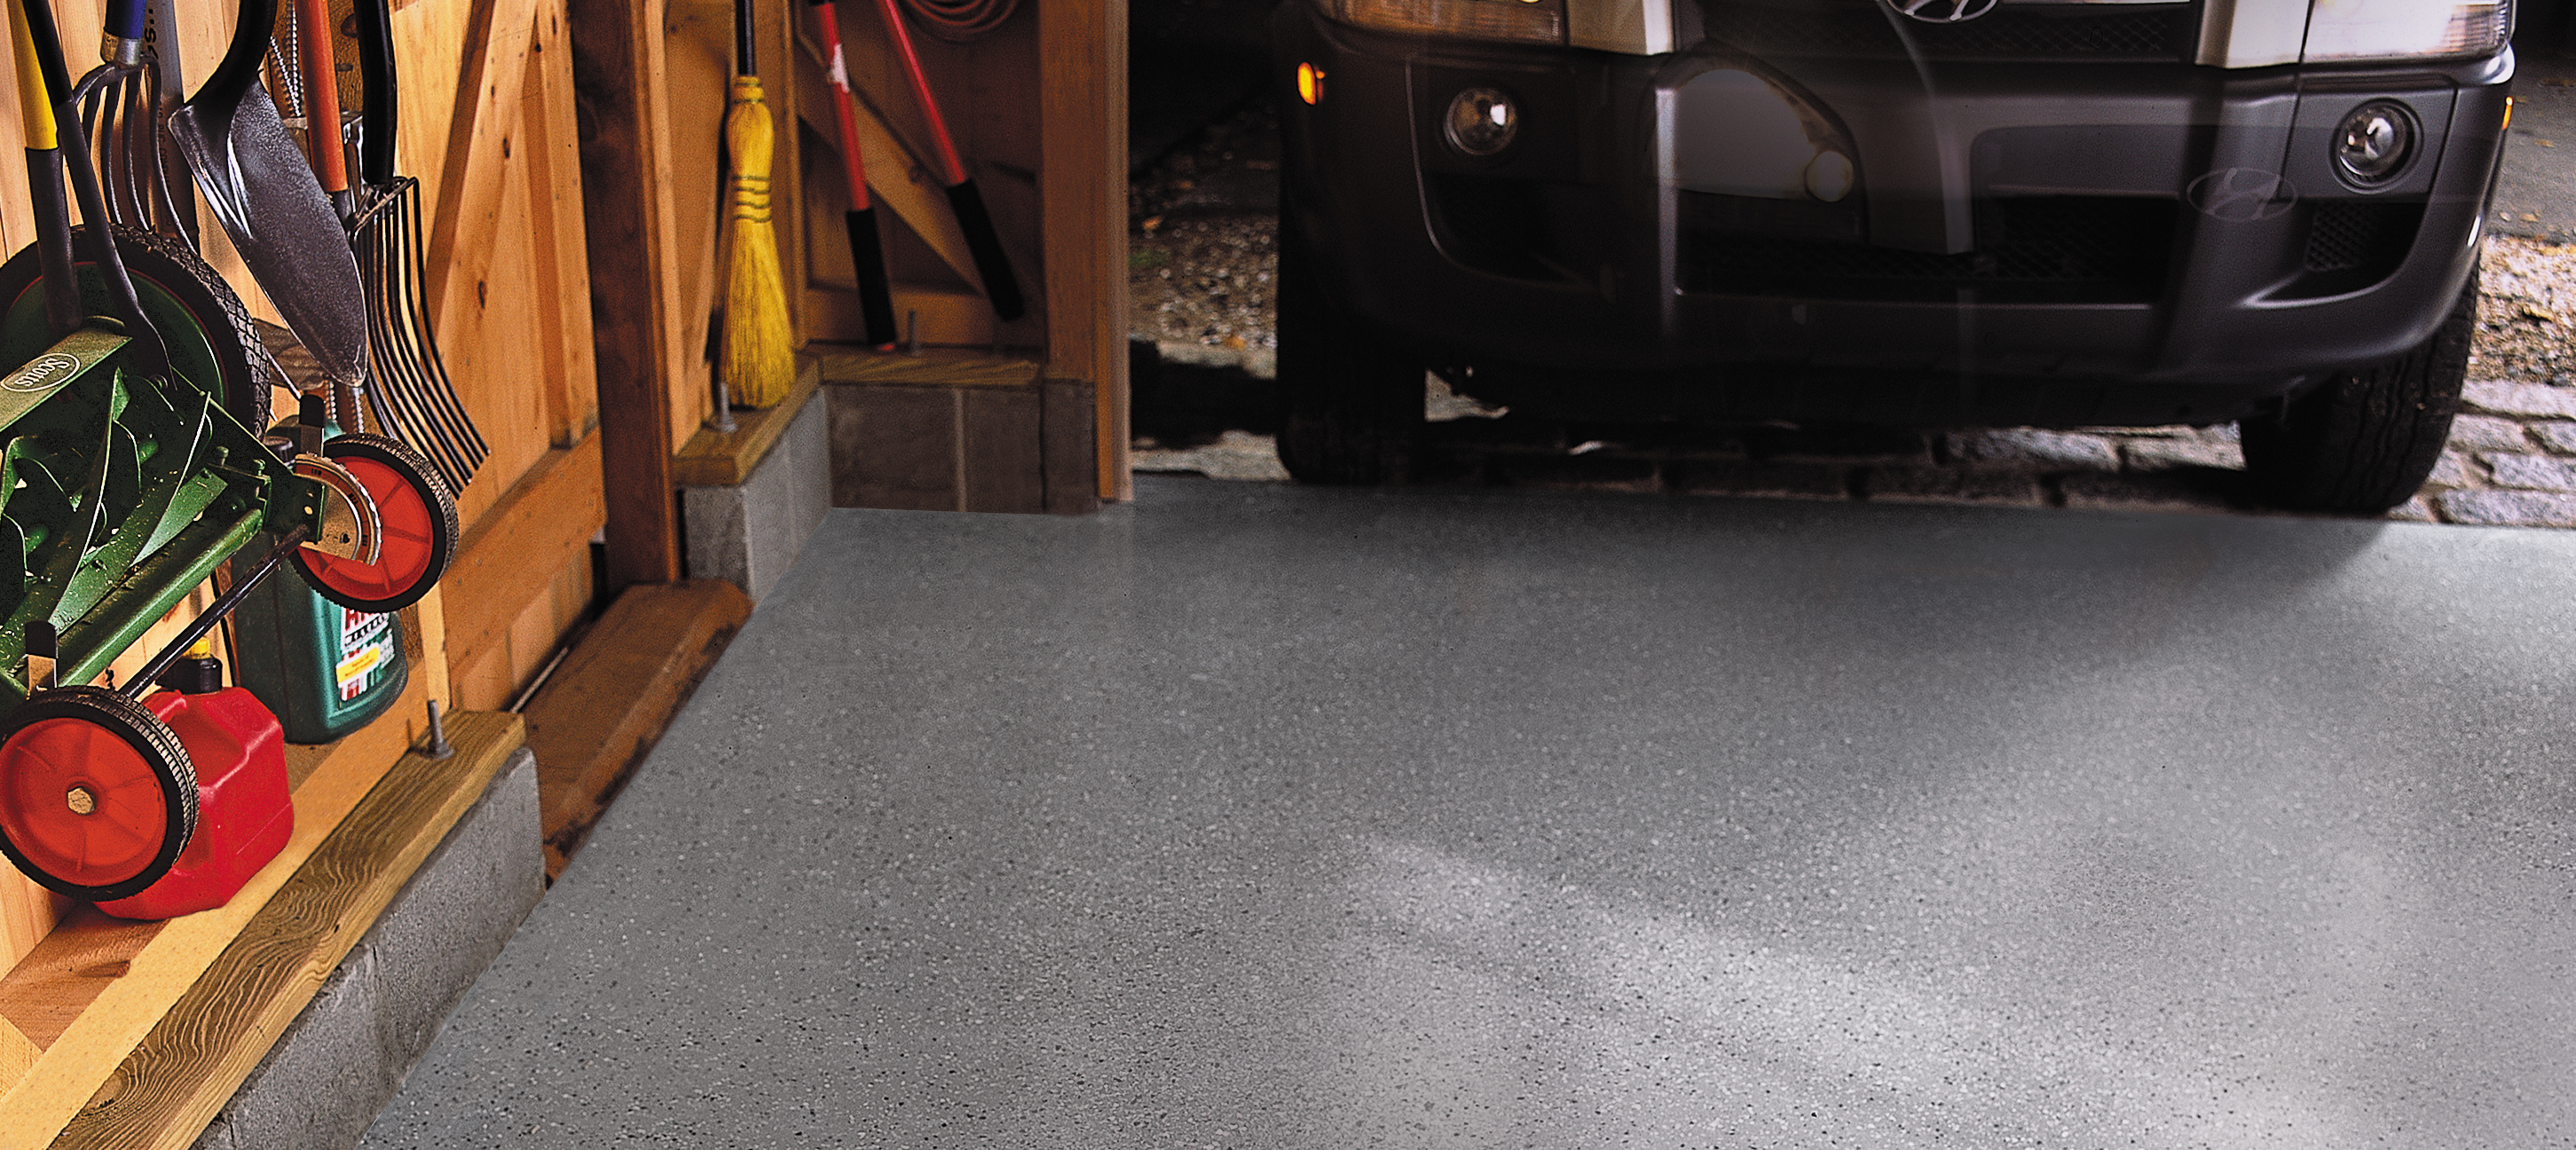 Gray Flannel Epoxy Garage Floor Coating with granite color flecks, from Quikrete.